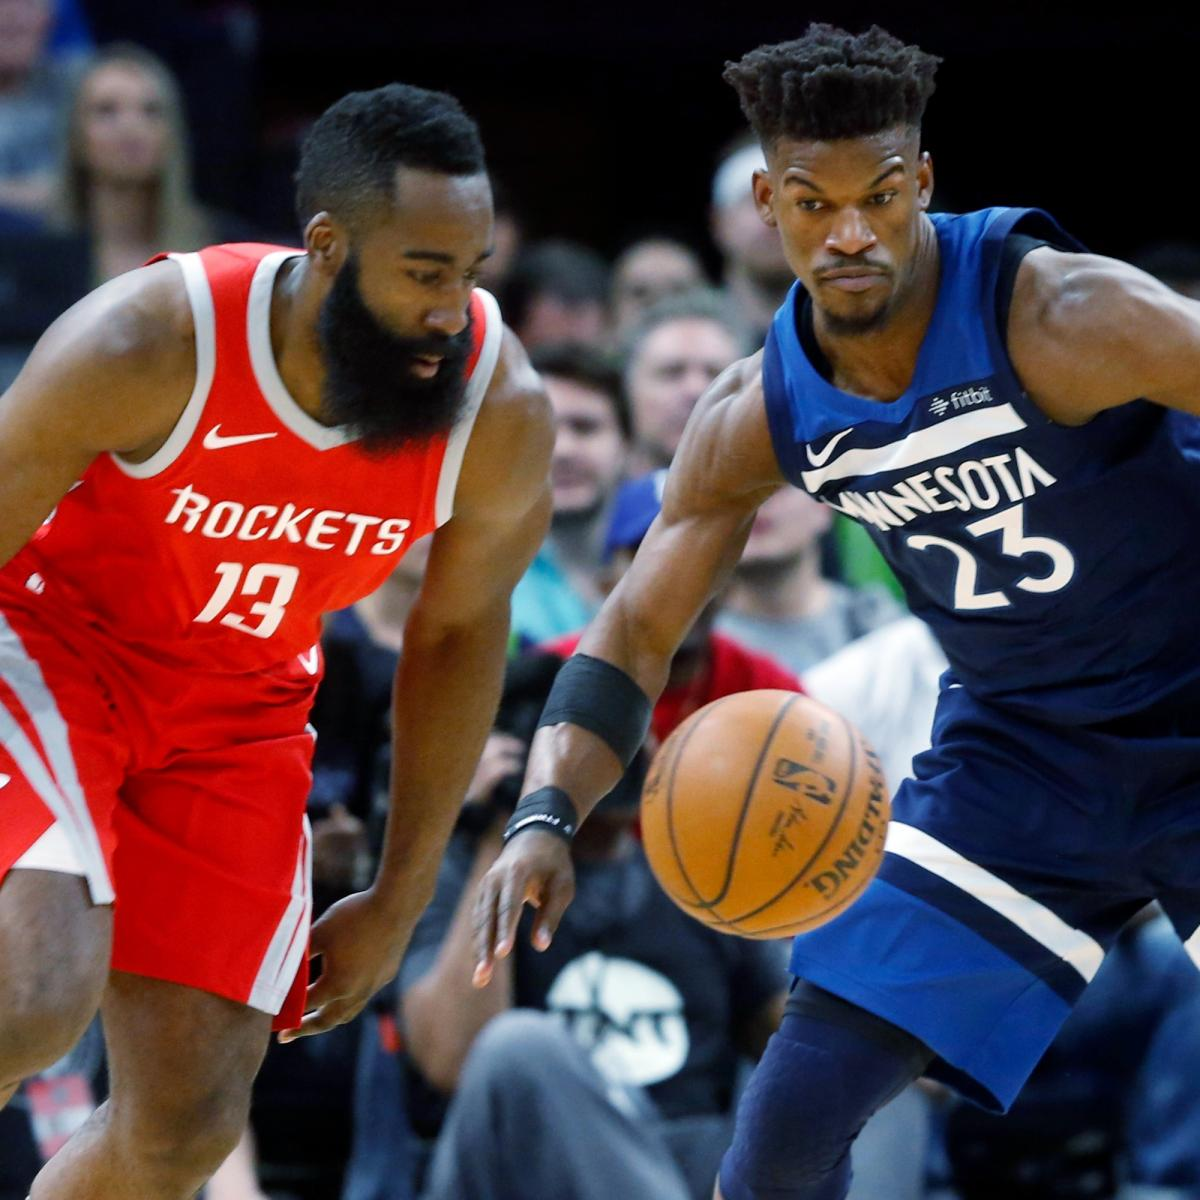 Houston Rockets Where To Watch The Upcoming Match Espn: This Is How Rockets Could Actually Trade Four 1st-Round